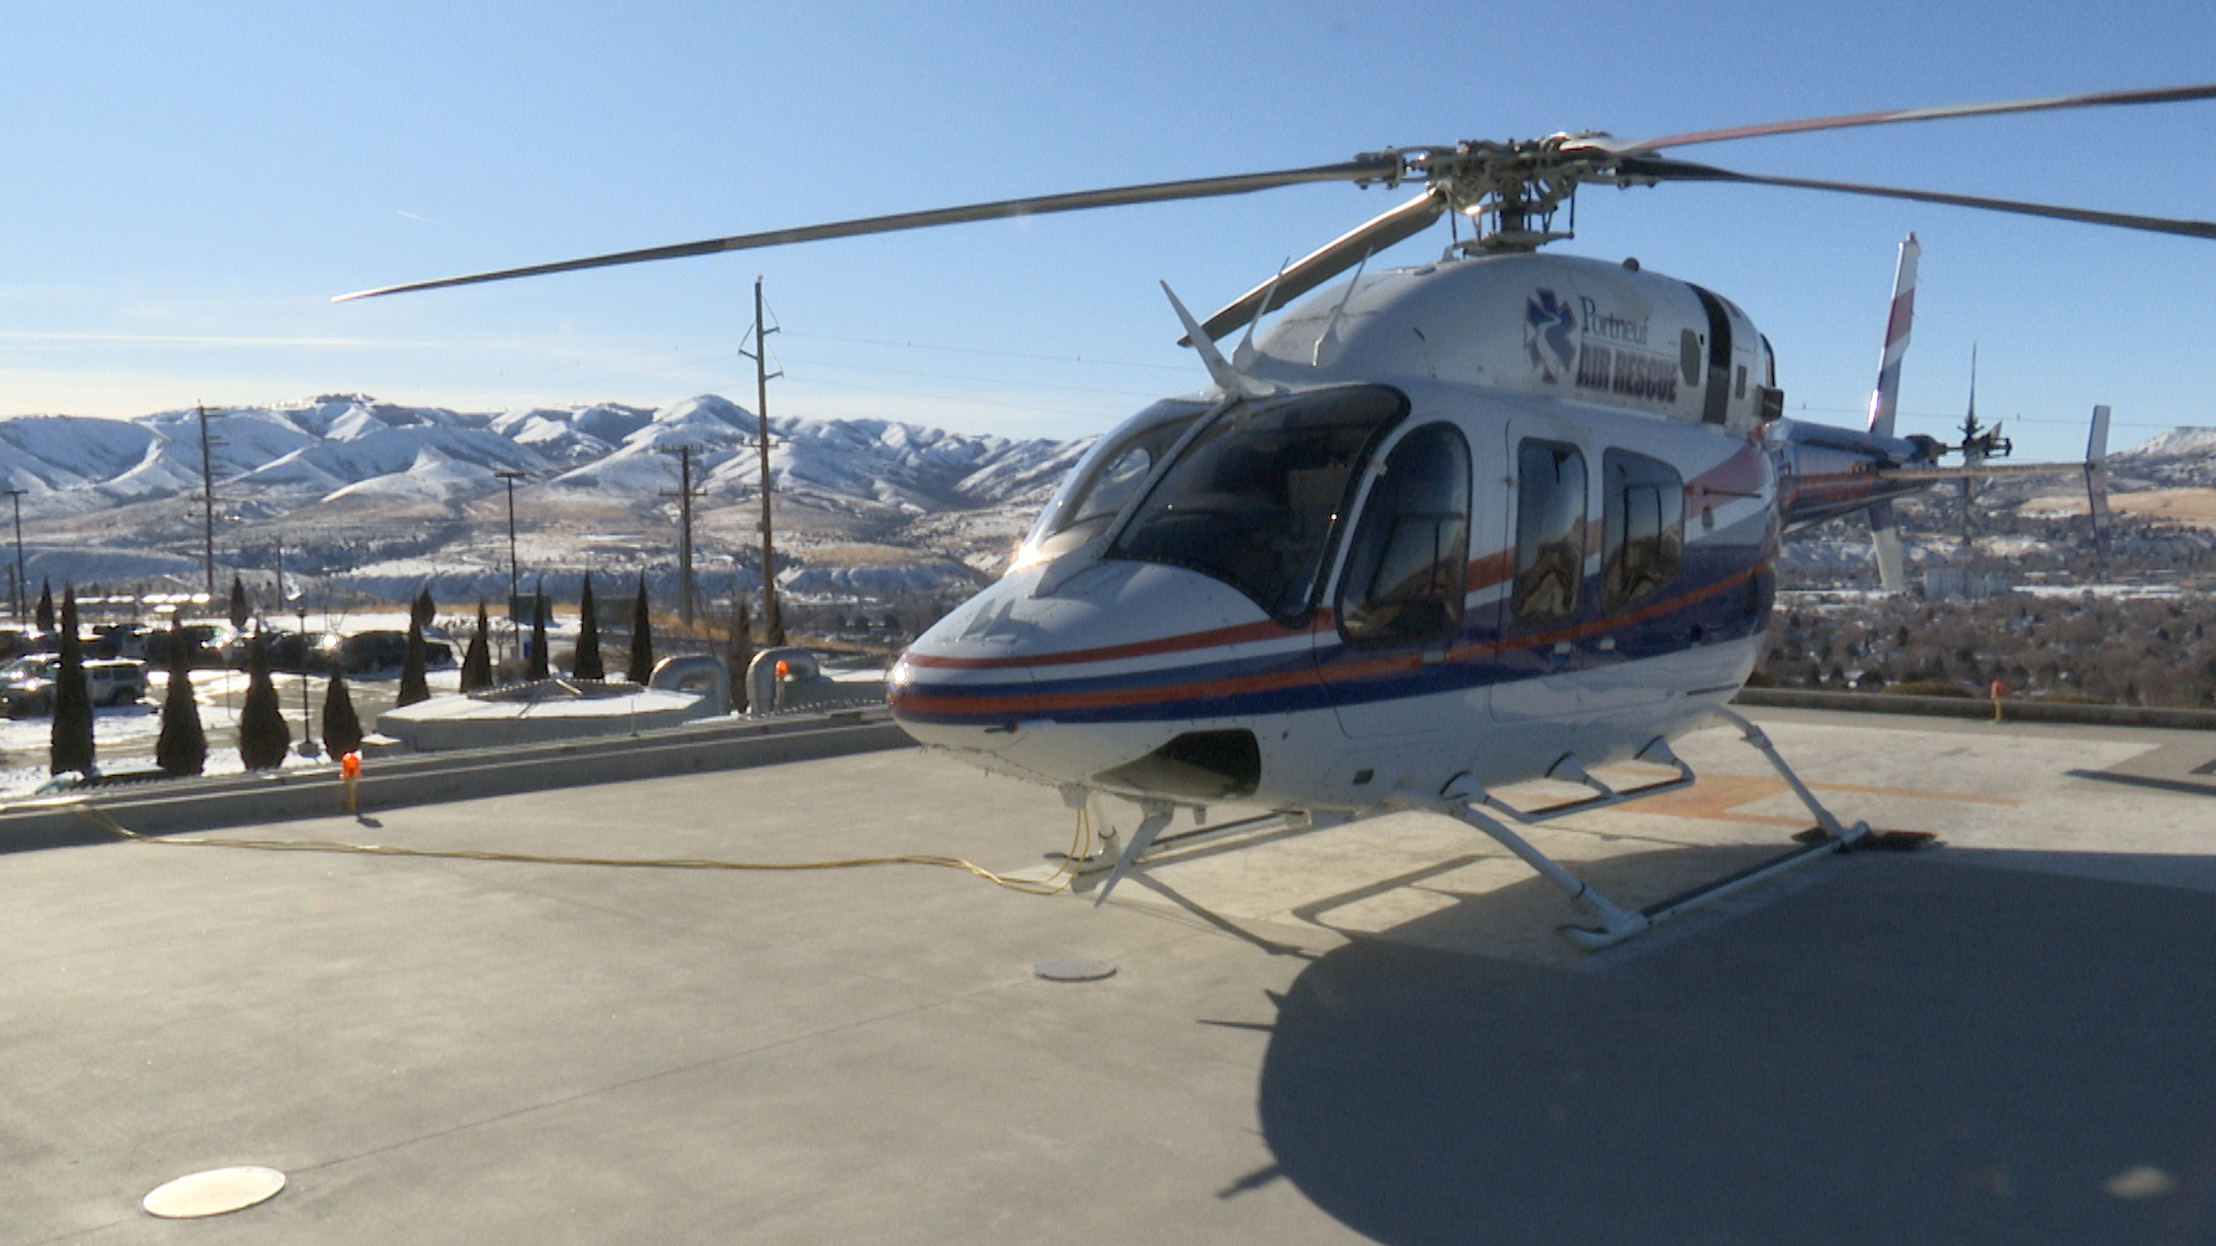 Portneuf Air Rescue